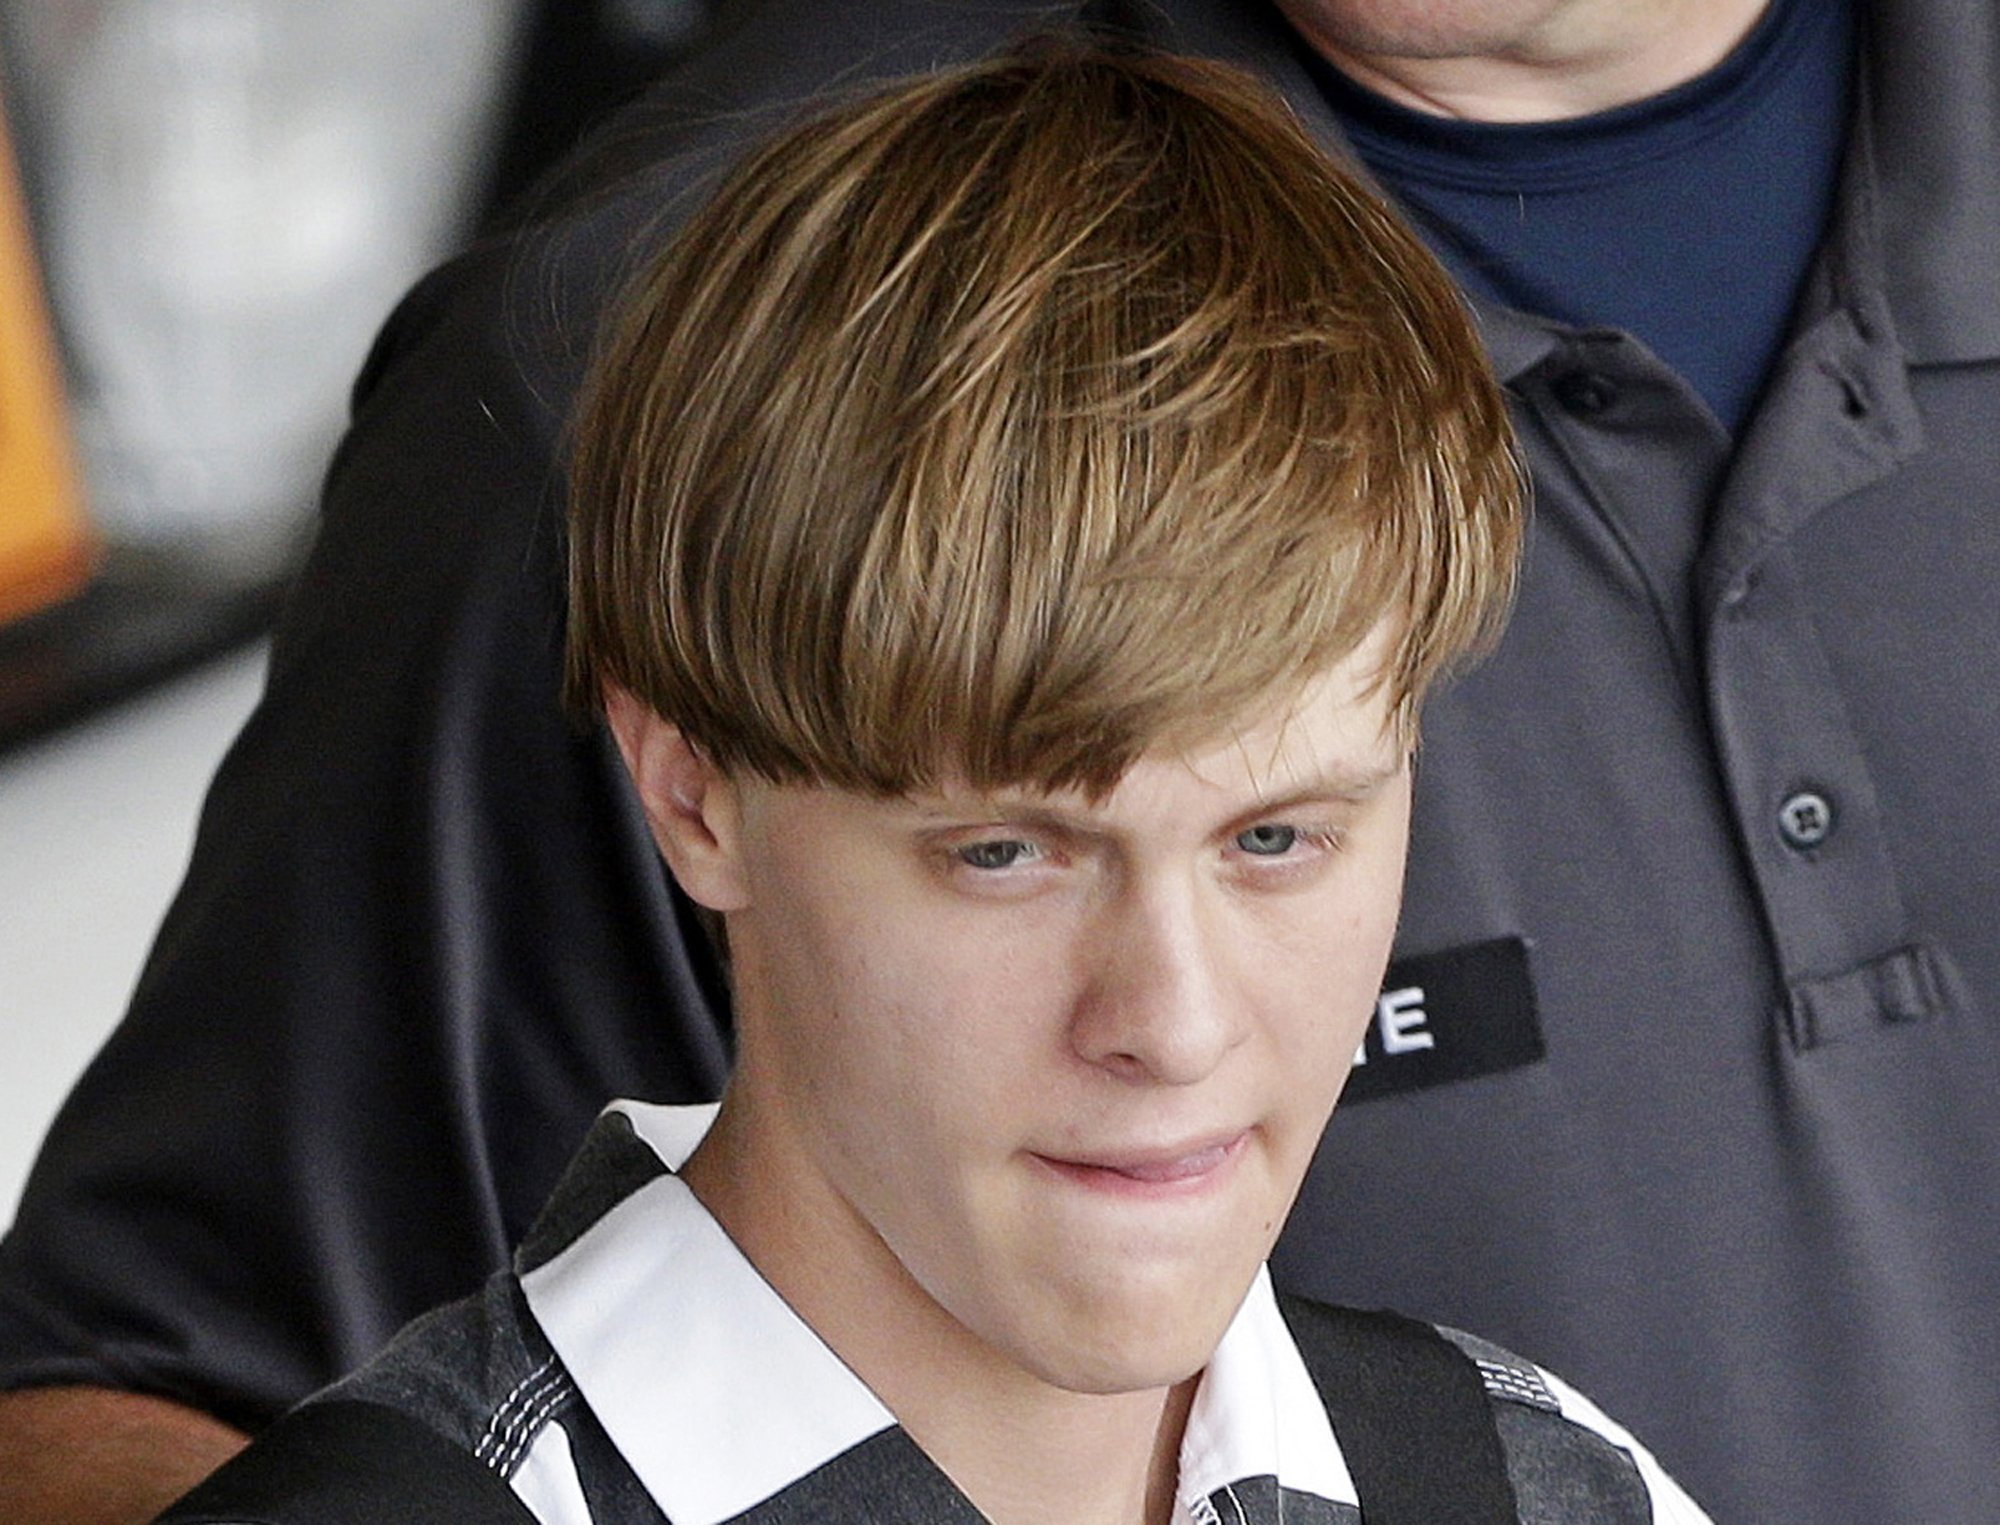 Trayvon Martin Case Helped Fuel Charleston Shooter